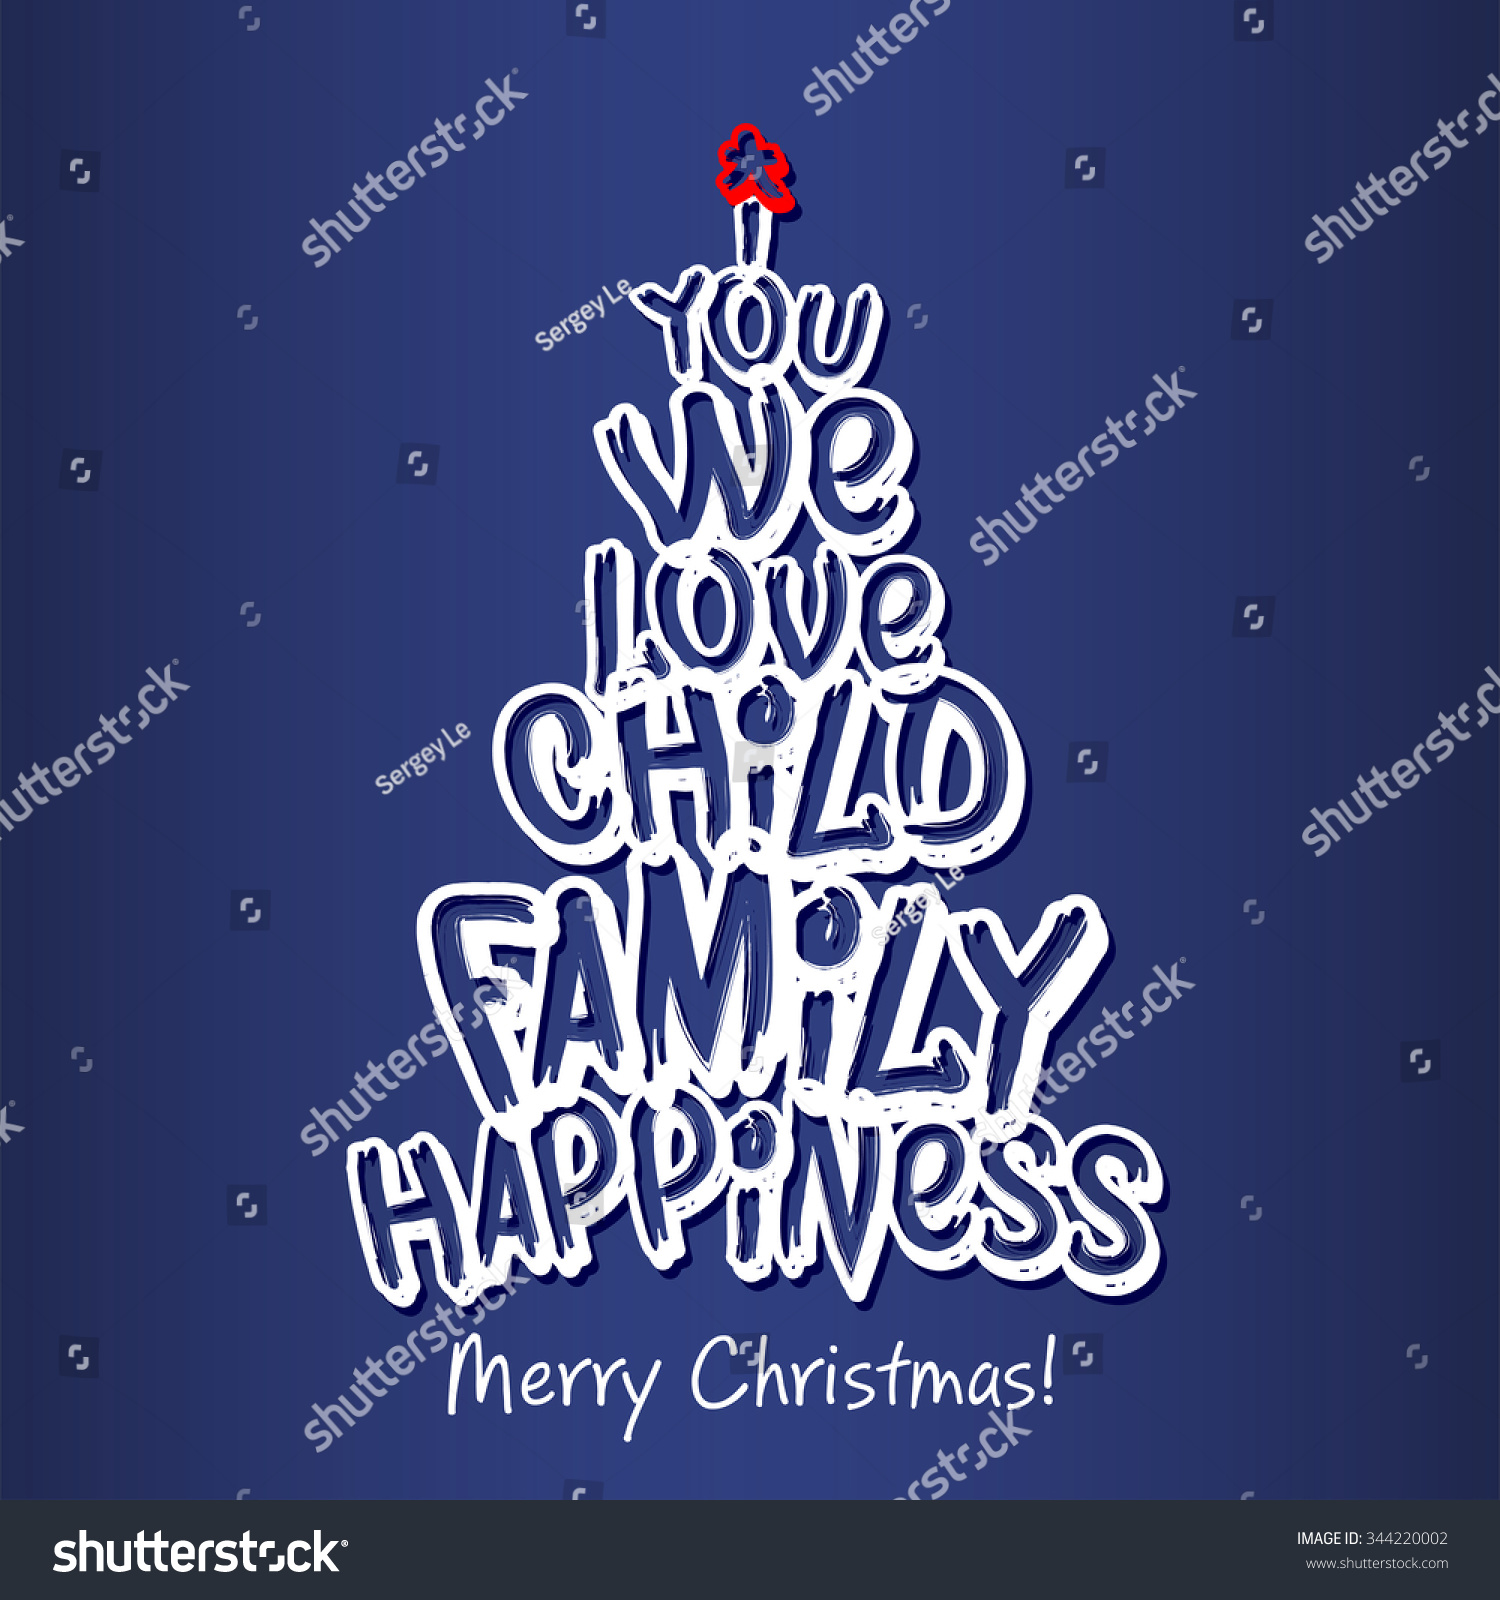 Merry Christmas Family Greeting Card Blue Stock Vector 344220002